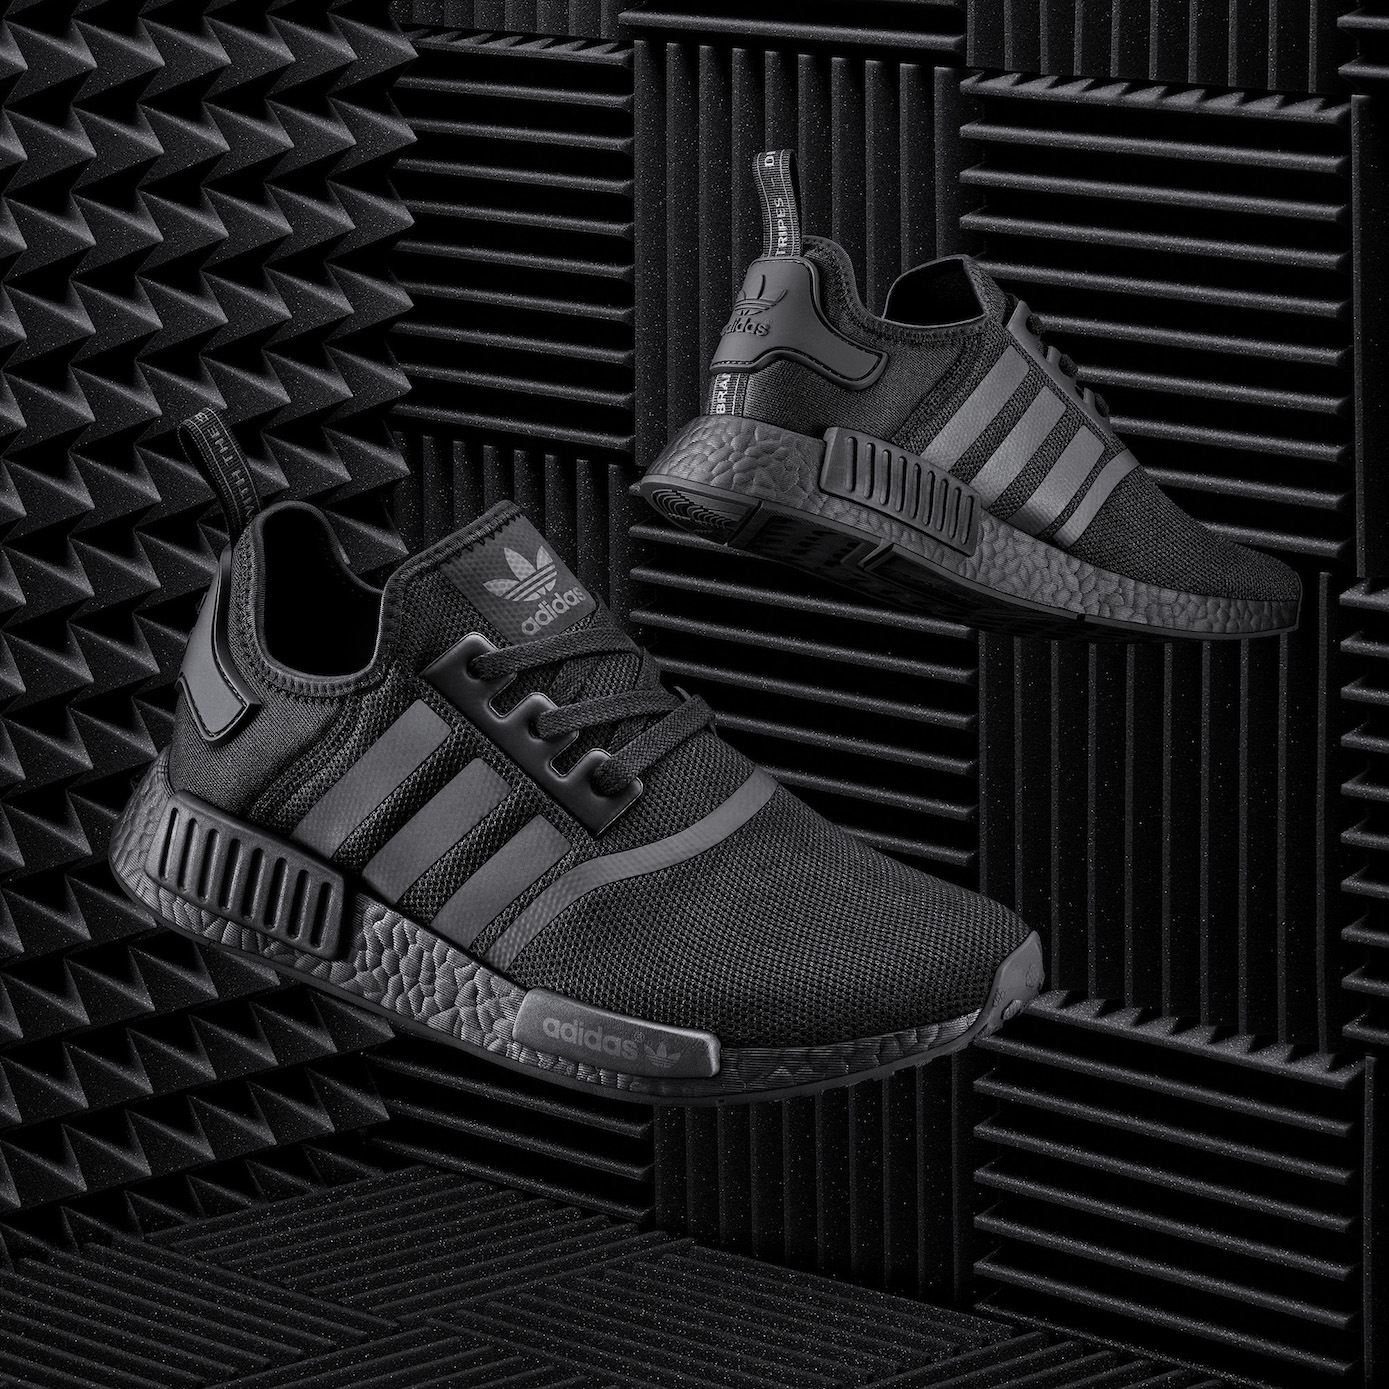 817f3917ce21 adidas Originals set to release NMD colored Boost – SLAMonline ...